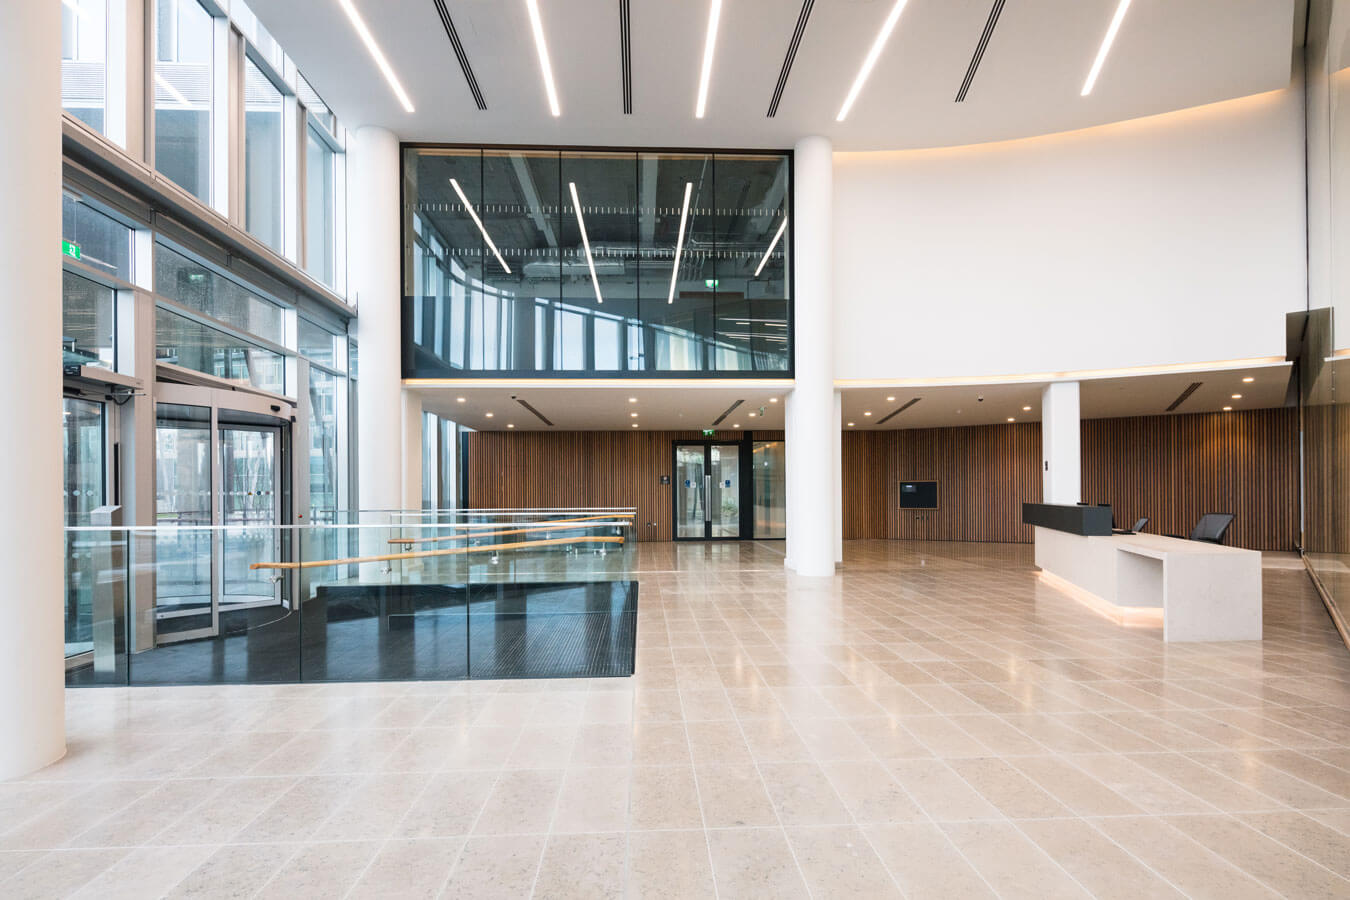 The Seamark Building Dublin Interior Lobby Are